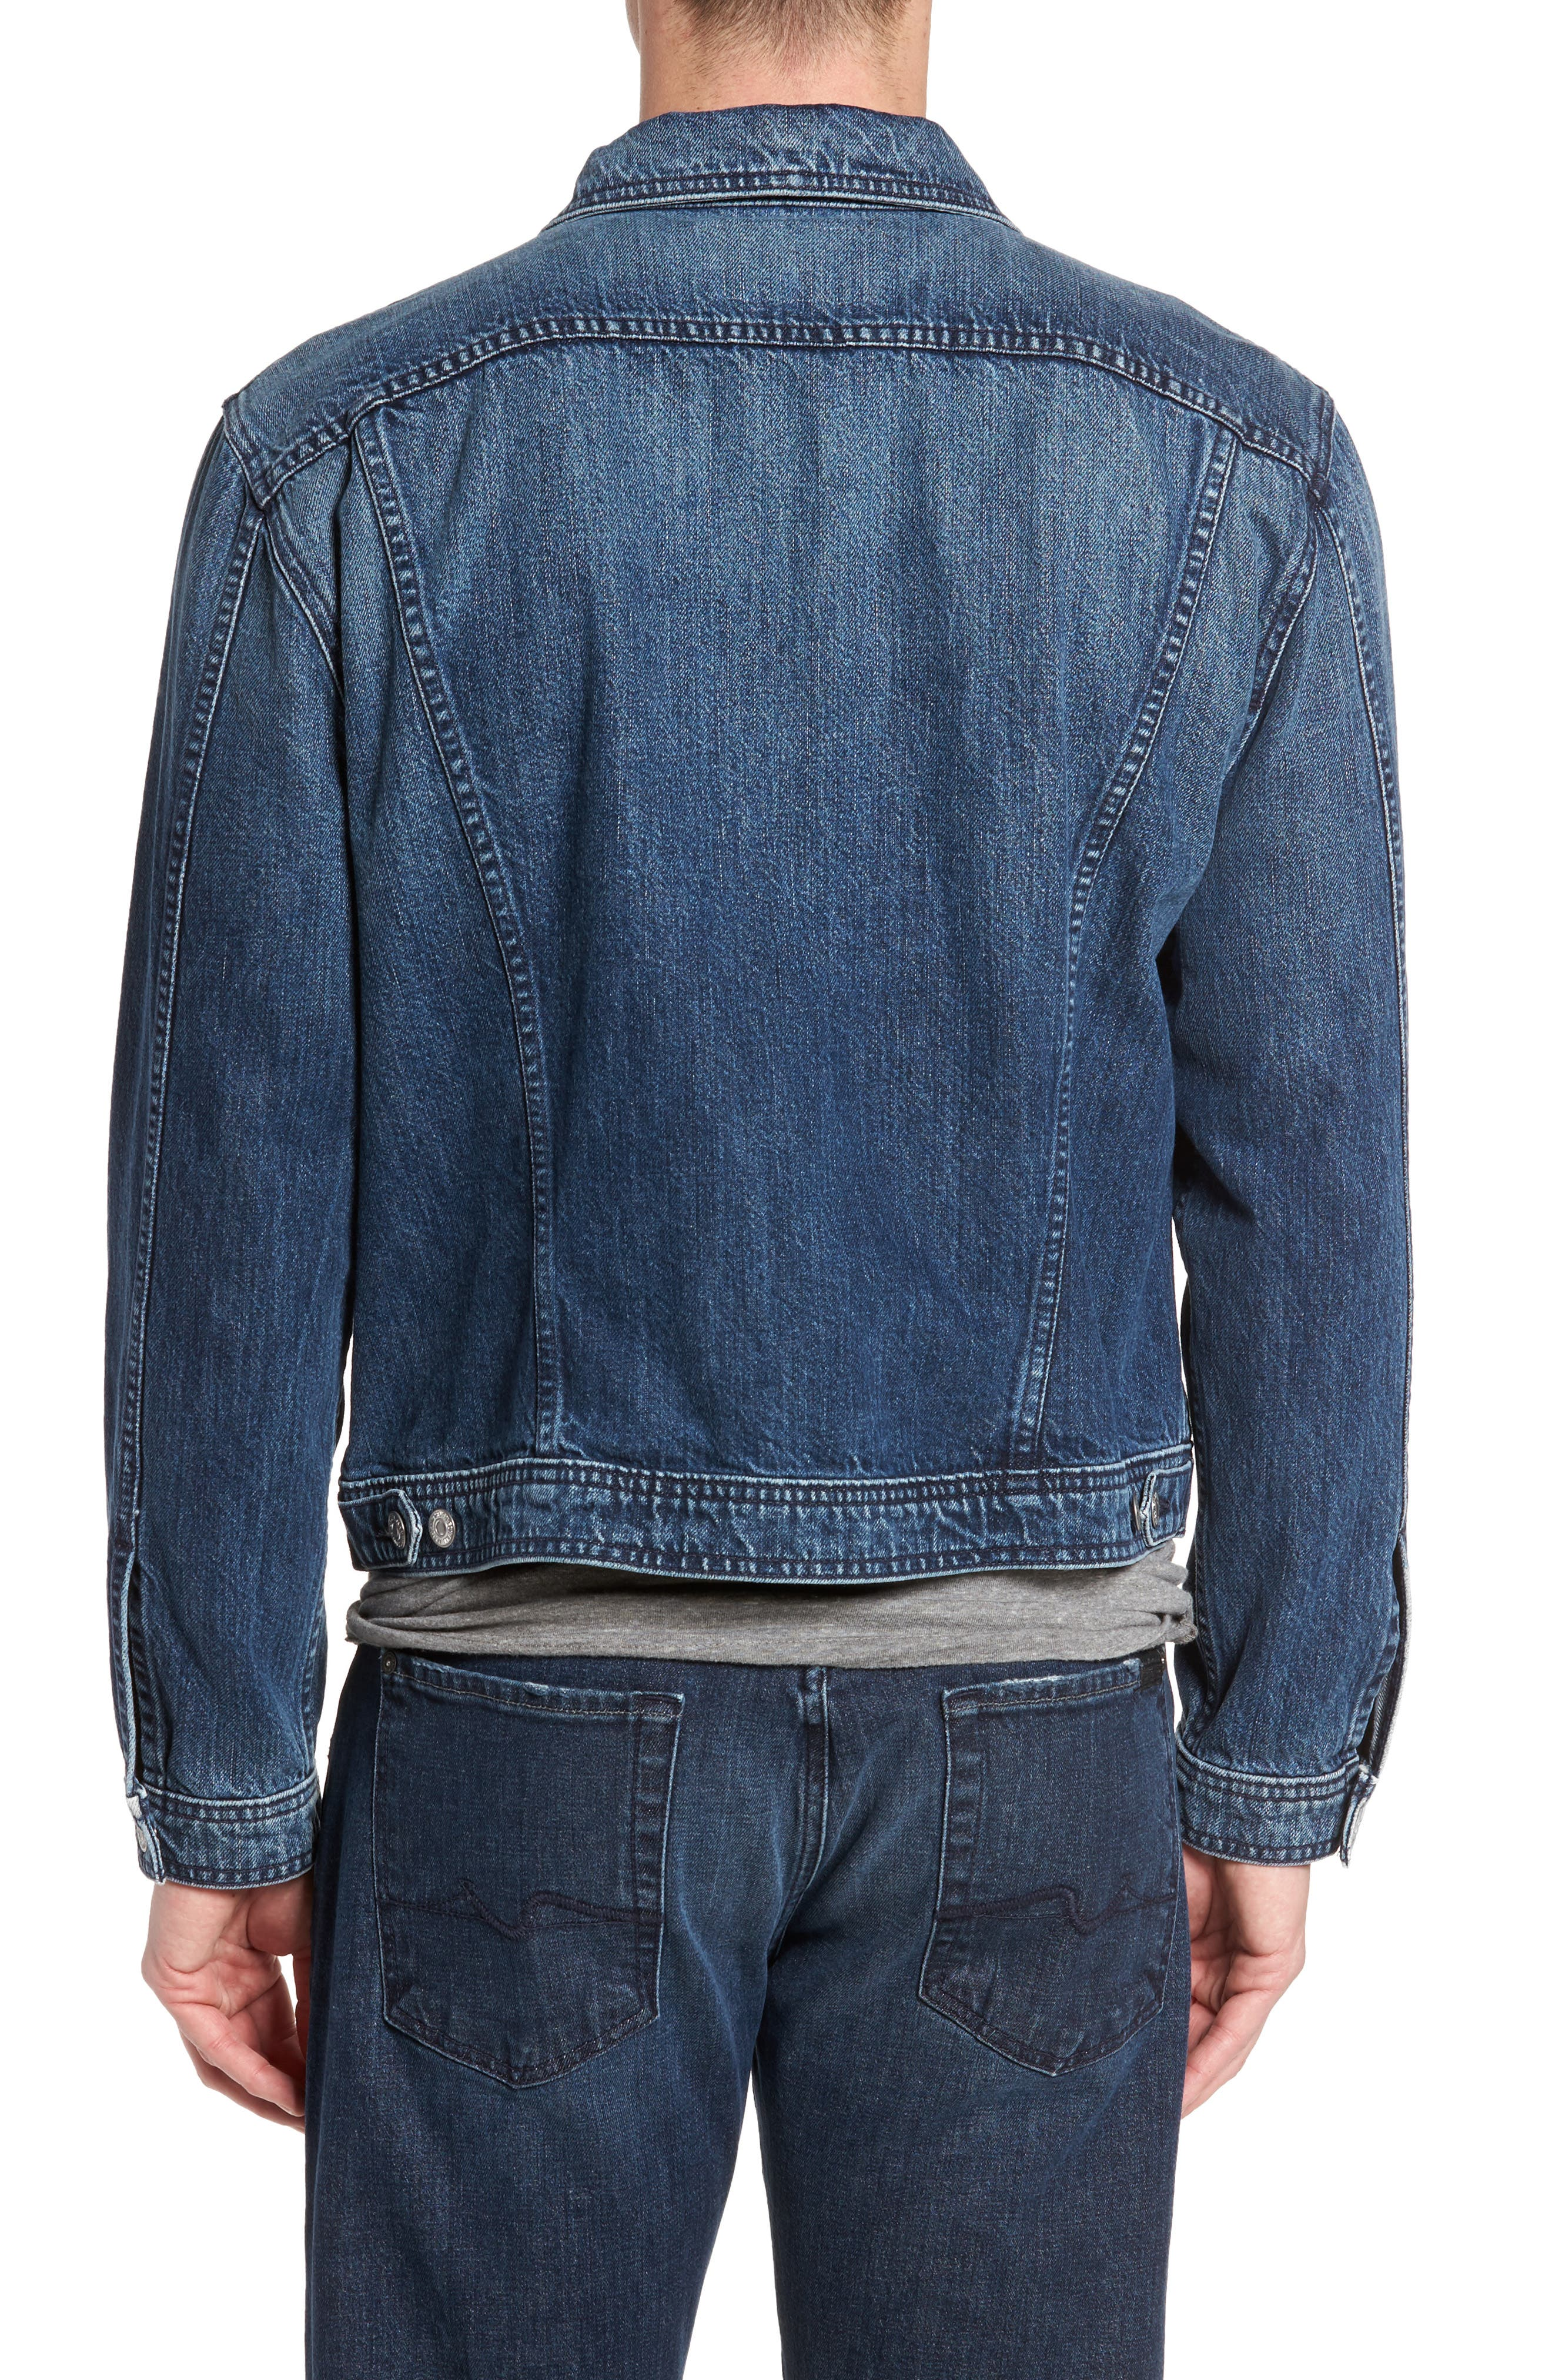 7 FOR ALL MANKIND<SUP>®</SUP>, Inside Out Trucker Jacket, Alternate thumbnail 2, color, VINTAGE BLUE